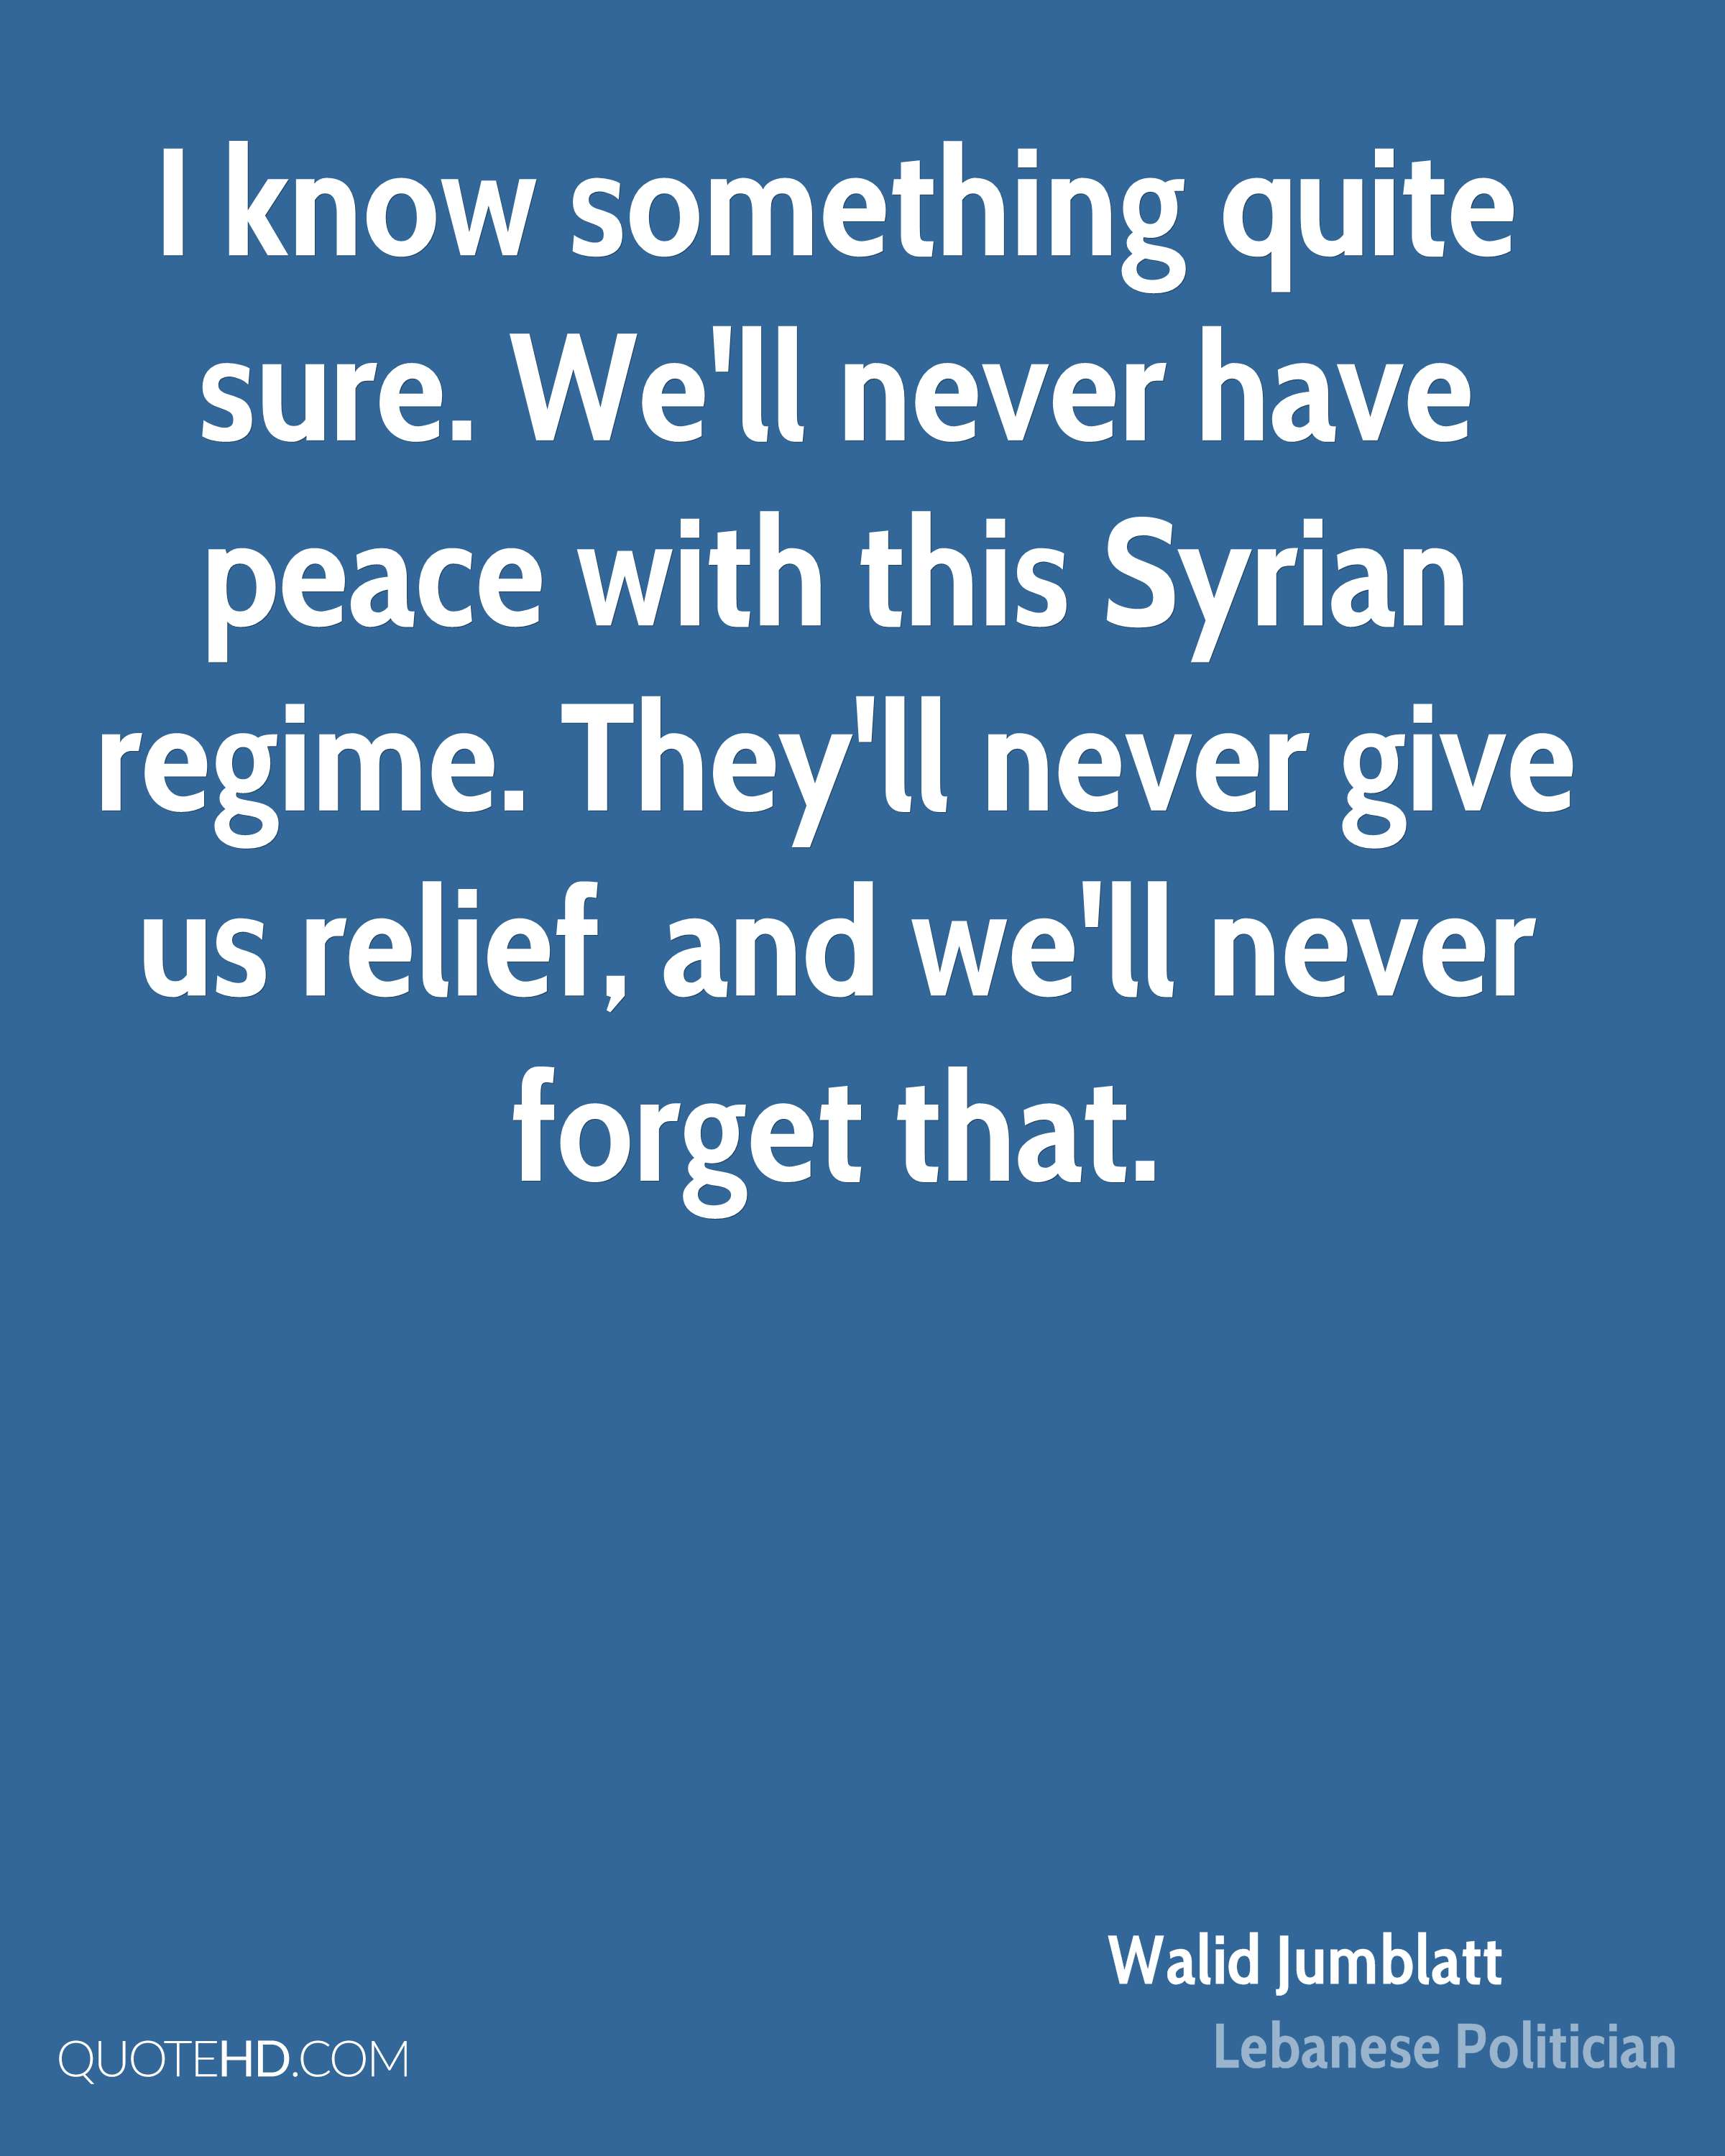 I know something quite sure. We'll never have peace with this Syrian regime. They'll never give us relief, and we'll never forget that.